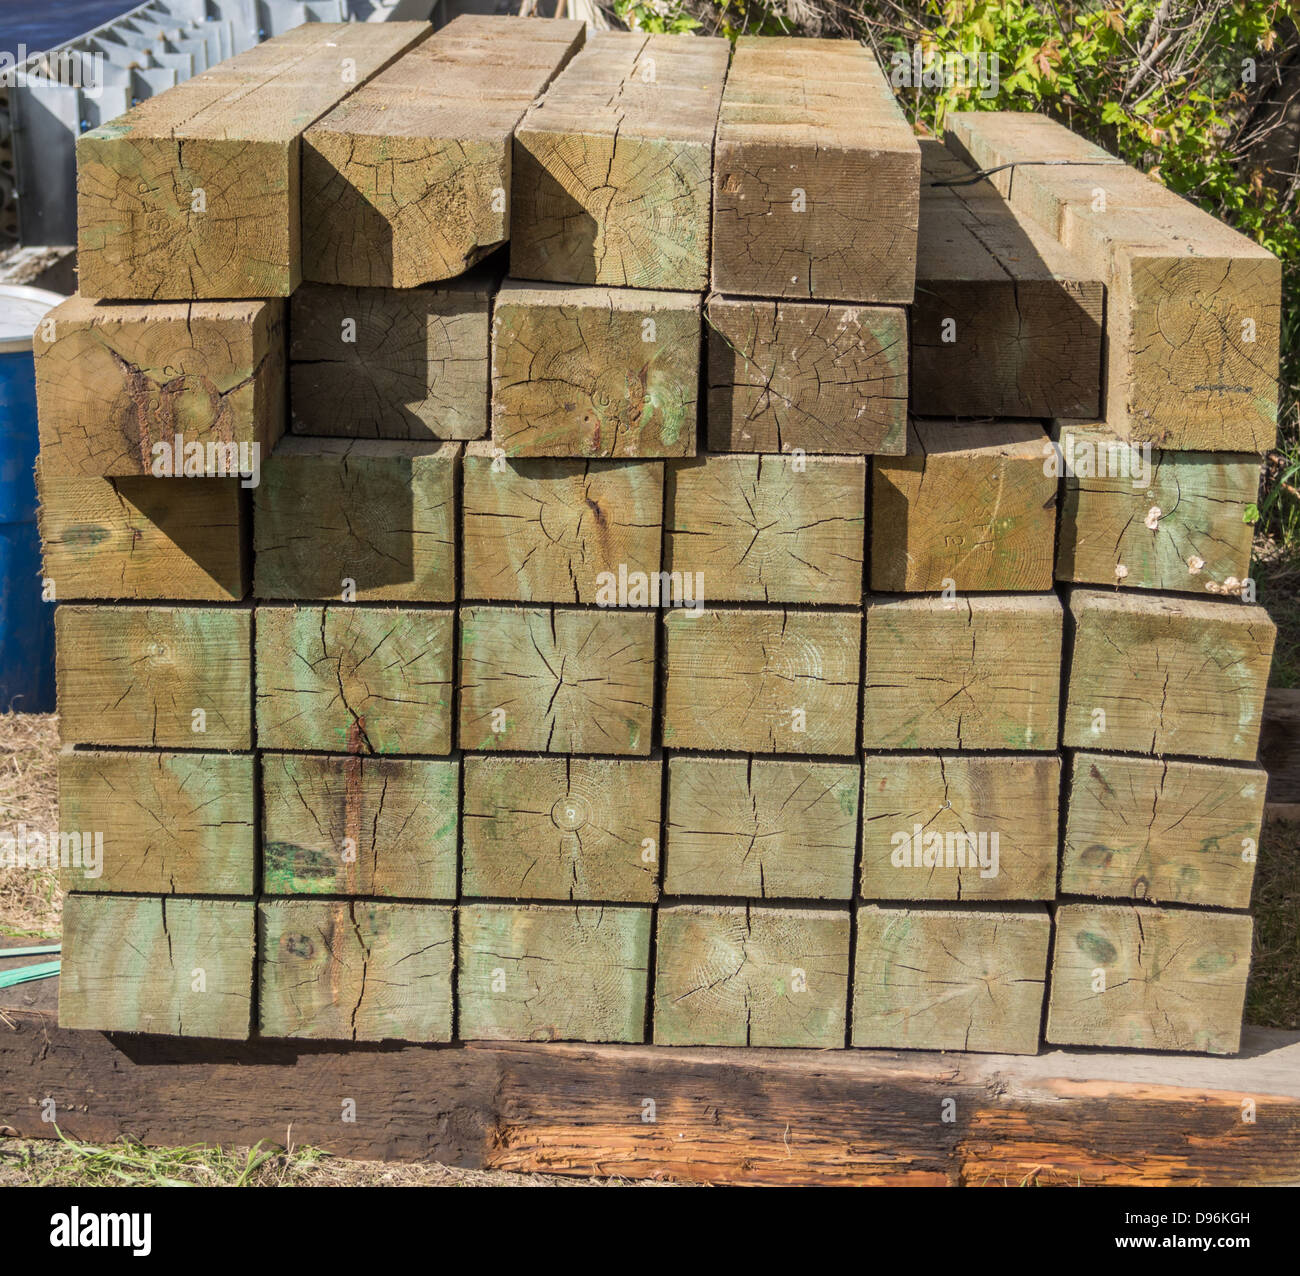 pile of stacked wood posts - Stock Image